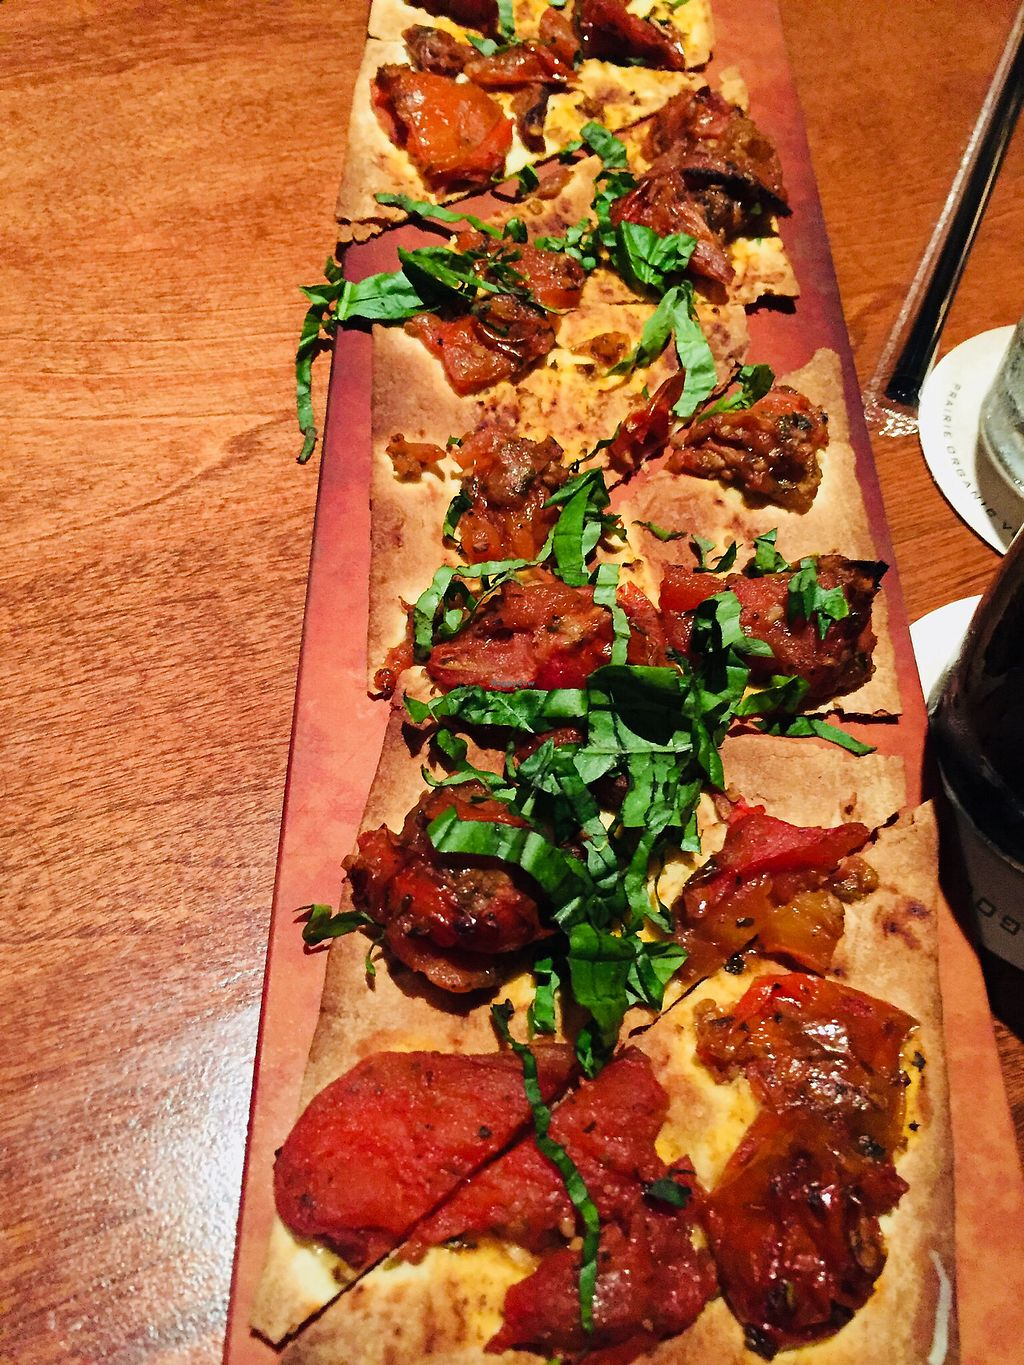 """Photo of Seasons 52  by <a href=""""/members/profile/plantbaseddfw"""">plantbaseddfw</a> <br/>Appetizer roasted Roma flatbread  <br/> February 16, 2018  - <a href='/contact/abuse/image/54291/359855'>Report</a>"""